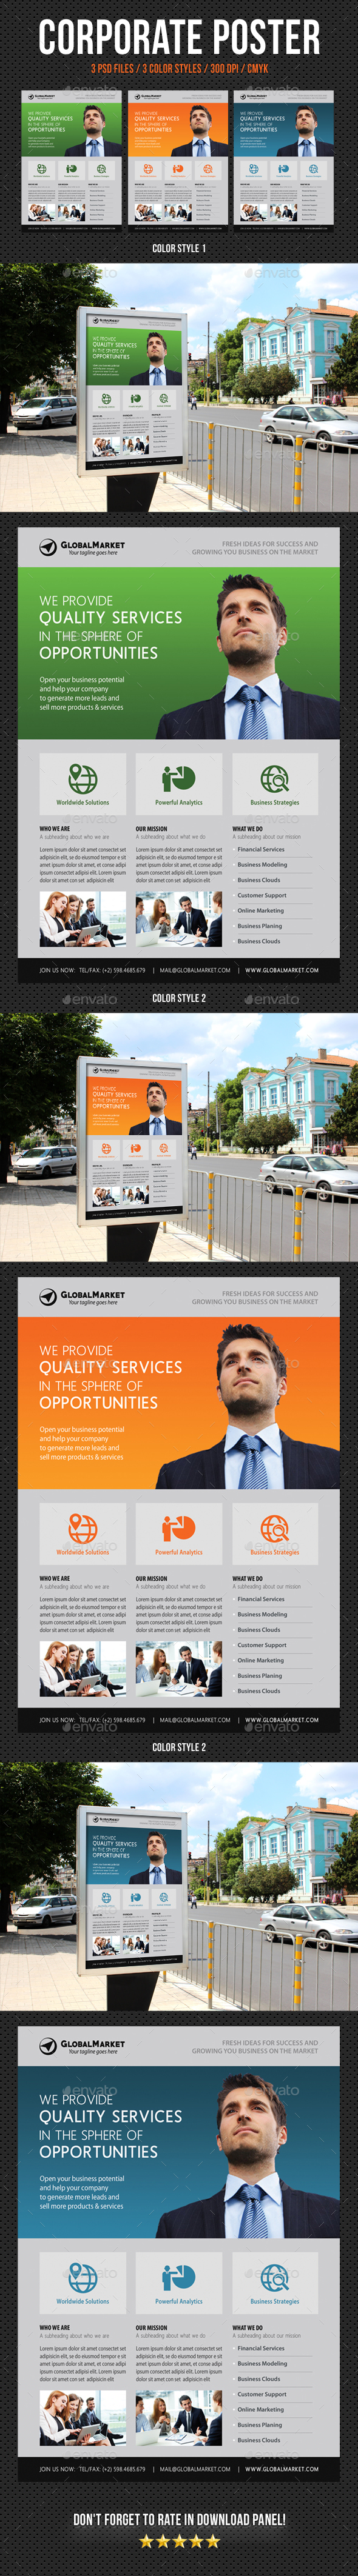 Corporate Business Poster Template V12 - Signage Print Templates